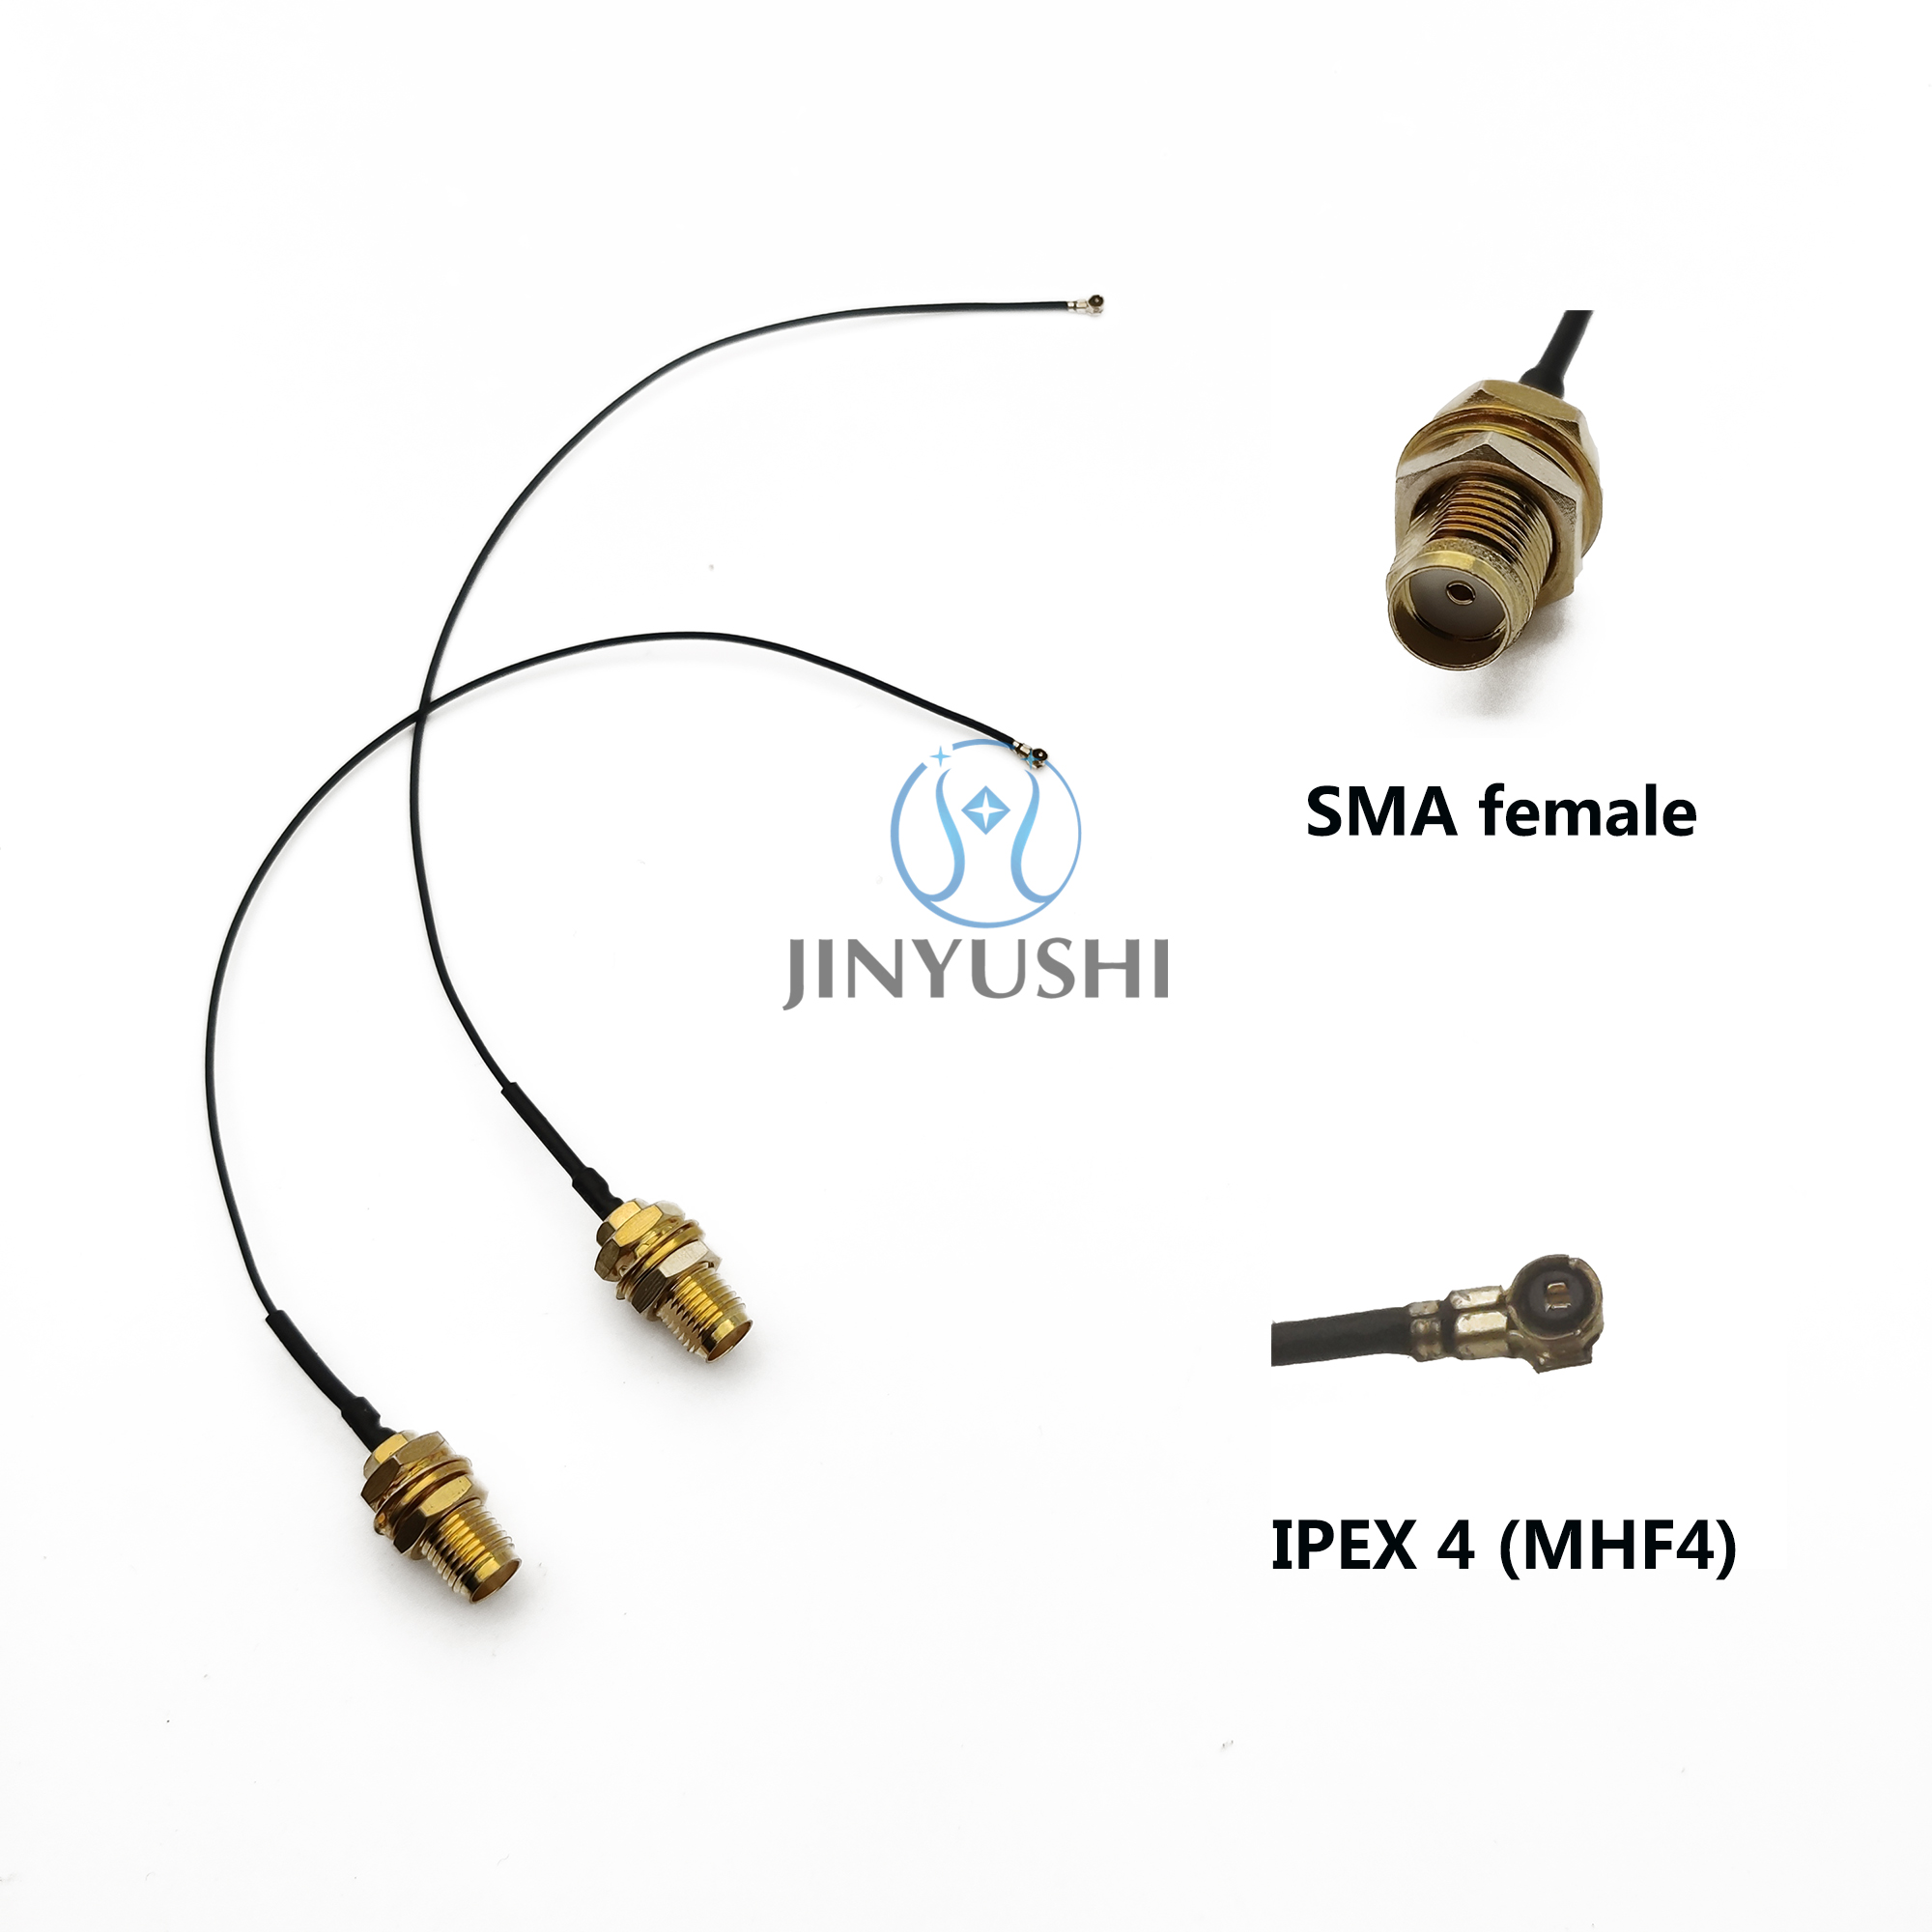 10cm/15cm/20cm/30cm IPEX4 MHF4 To SMA Extension Cord RP-SMA Cable Pigtail Connector Antenna Cable For EM7565 EM7430 EM06-E Etc